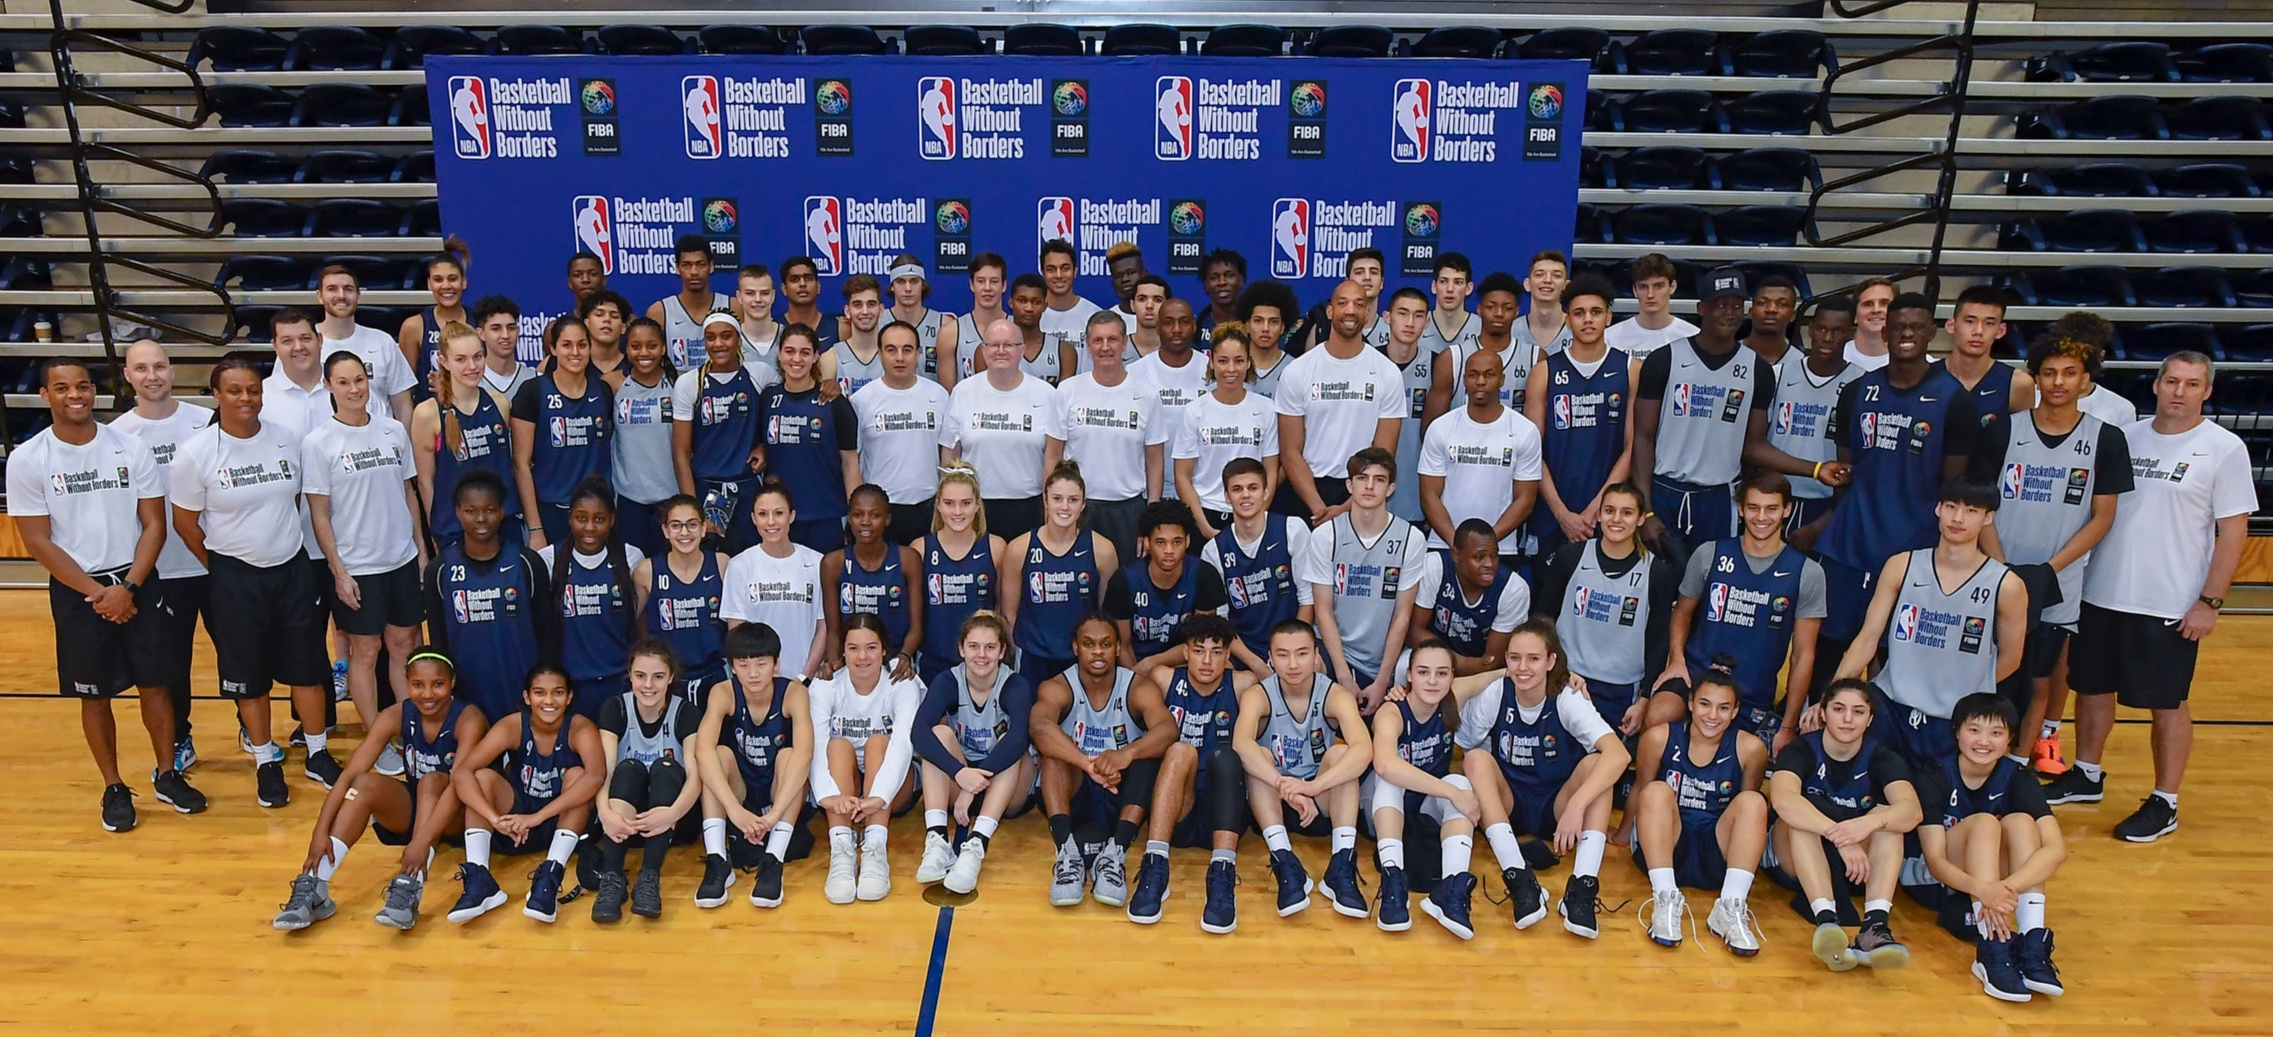 2019 NBA All star Fifth Annual basketball without borders global camp -